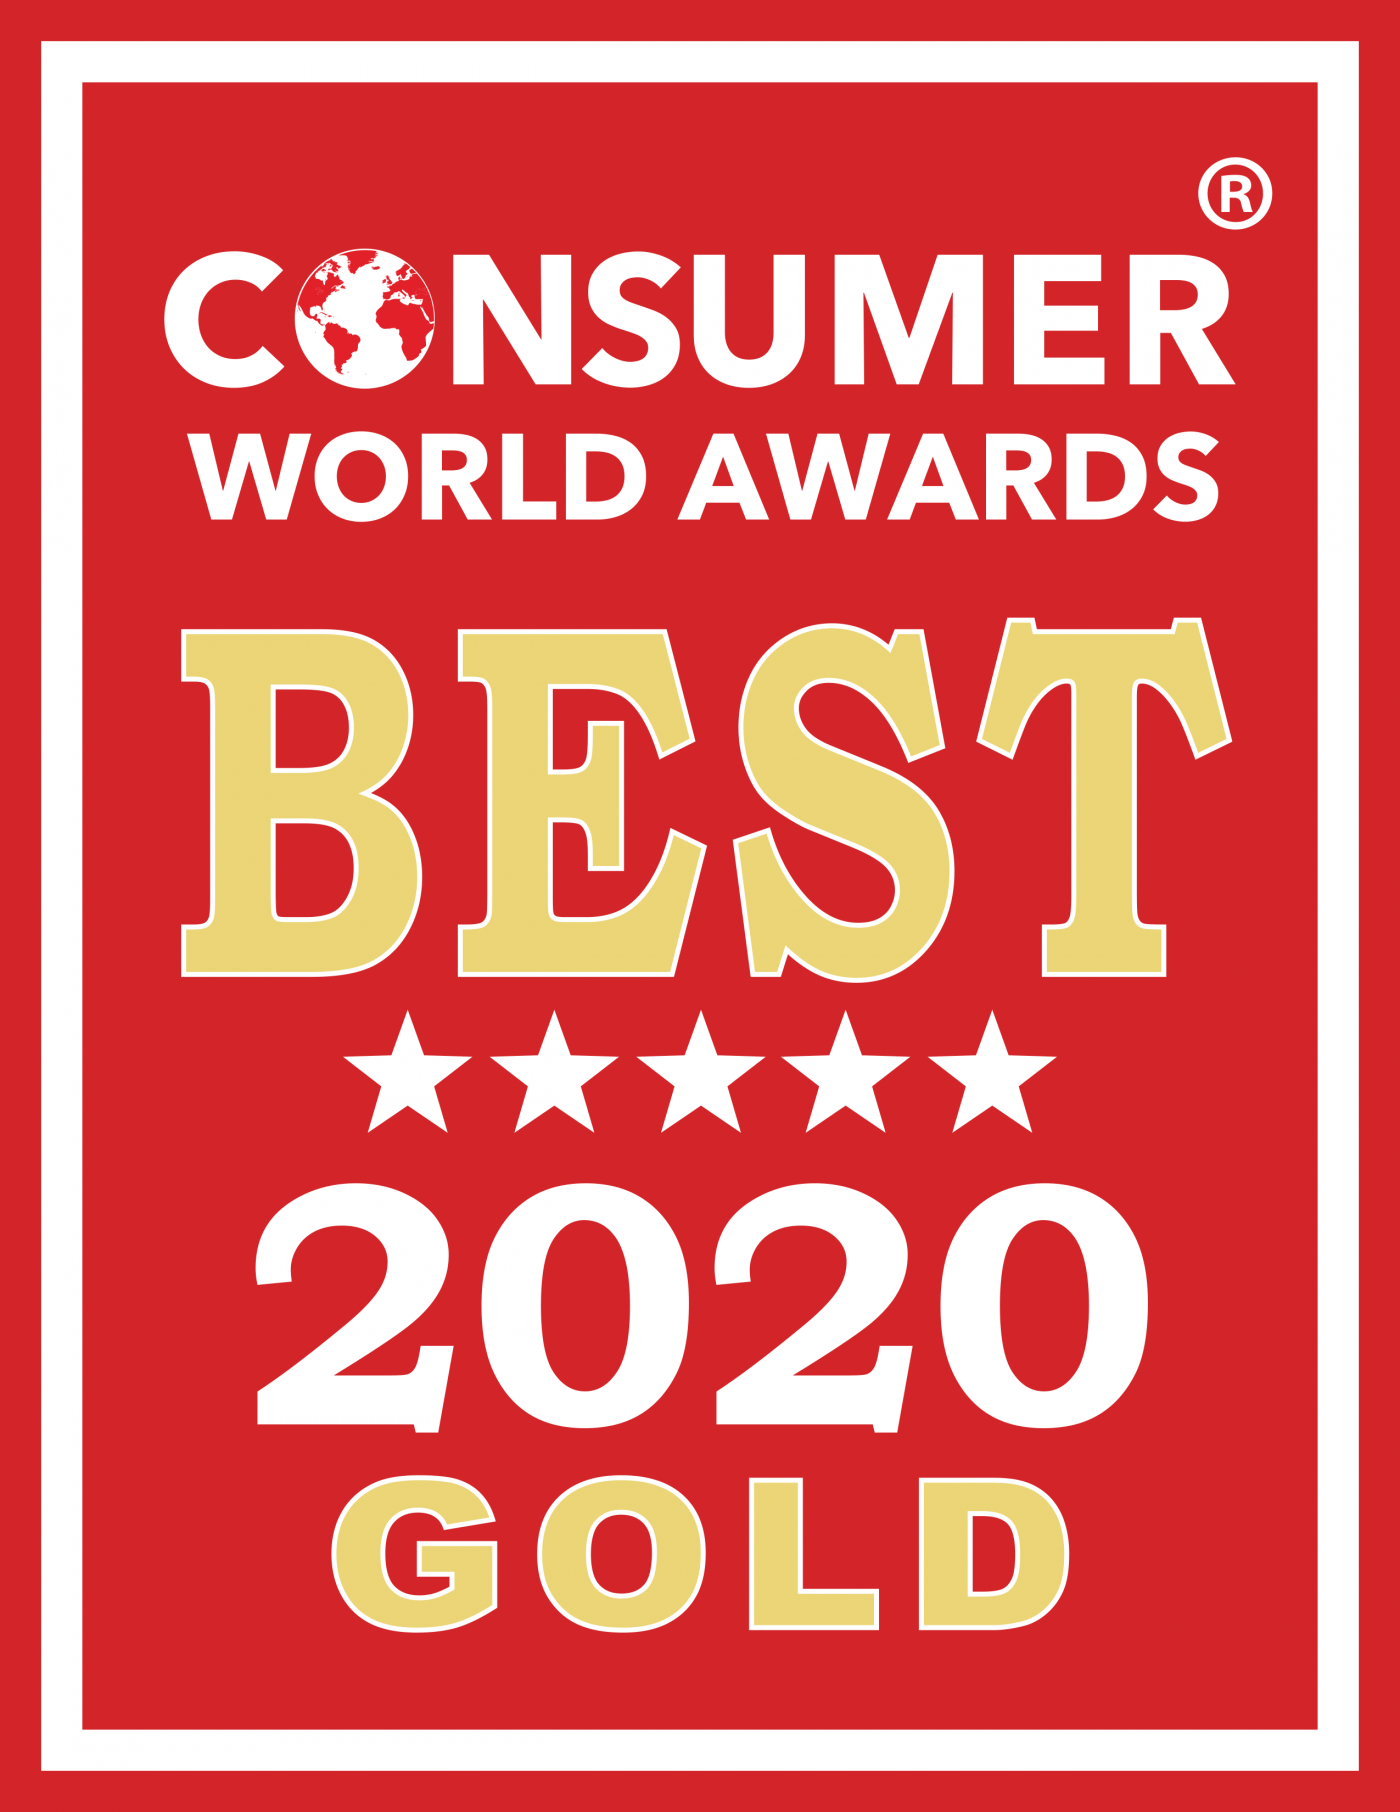 Biofriendly wins Gold in the 10th Annual 2020 Consumer World Awards®